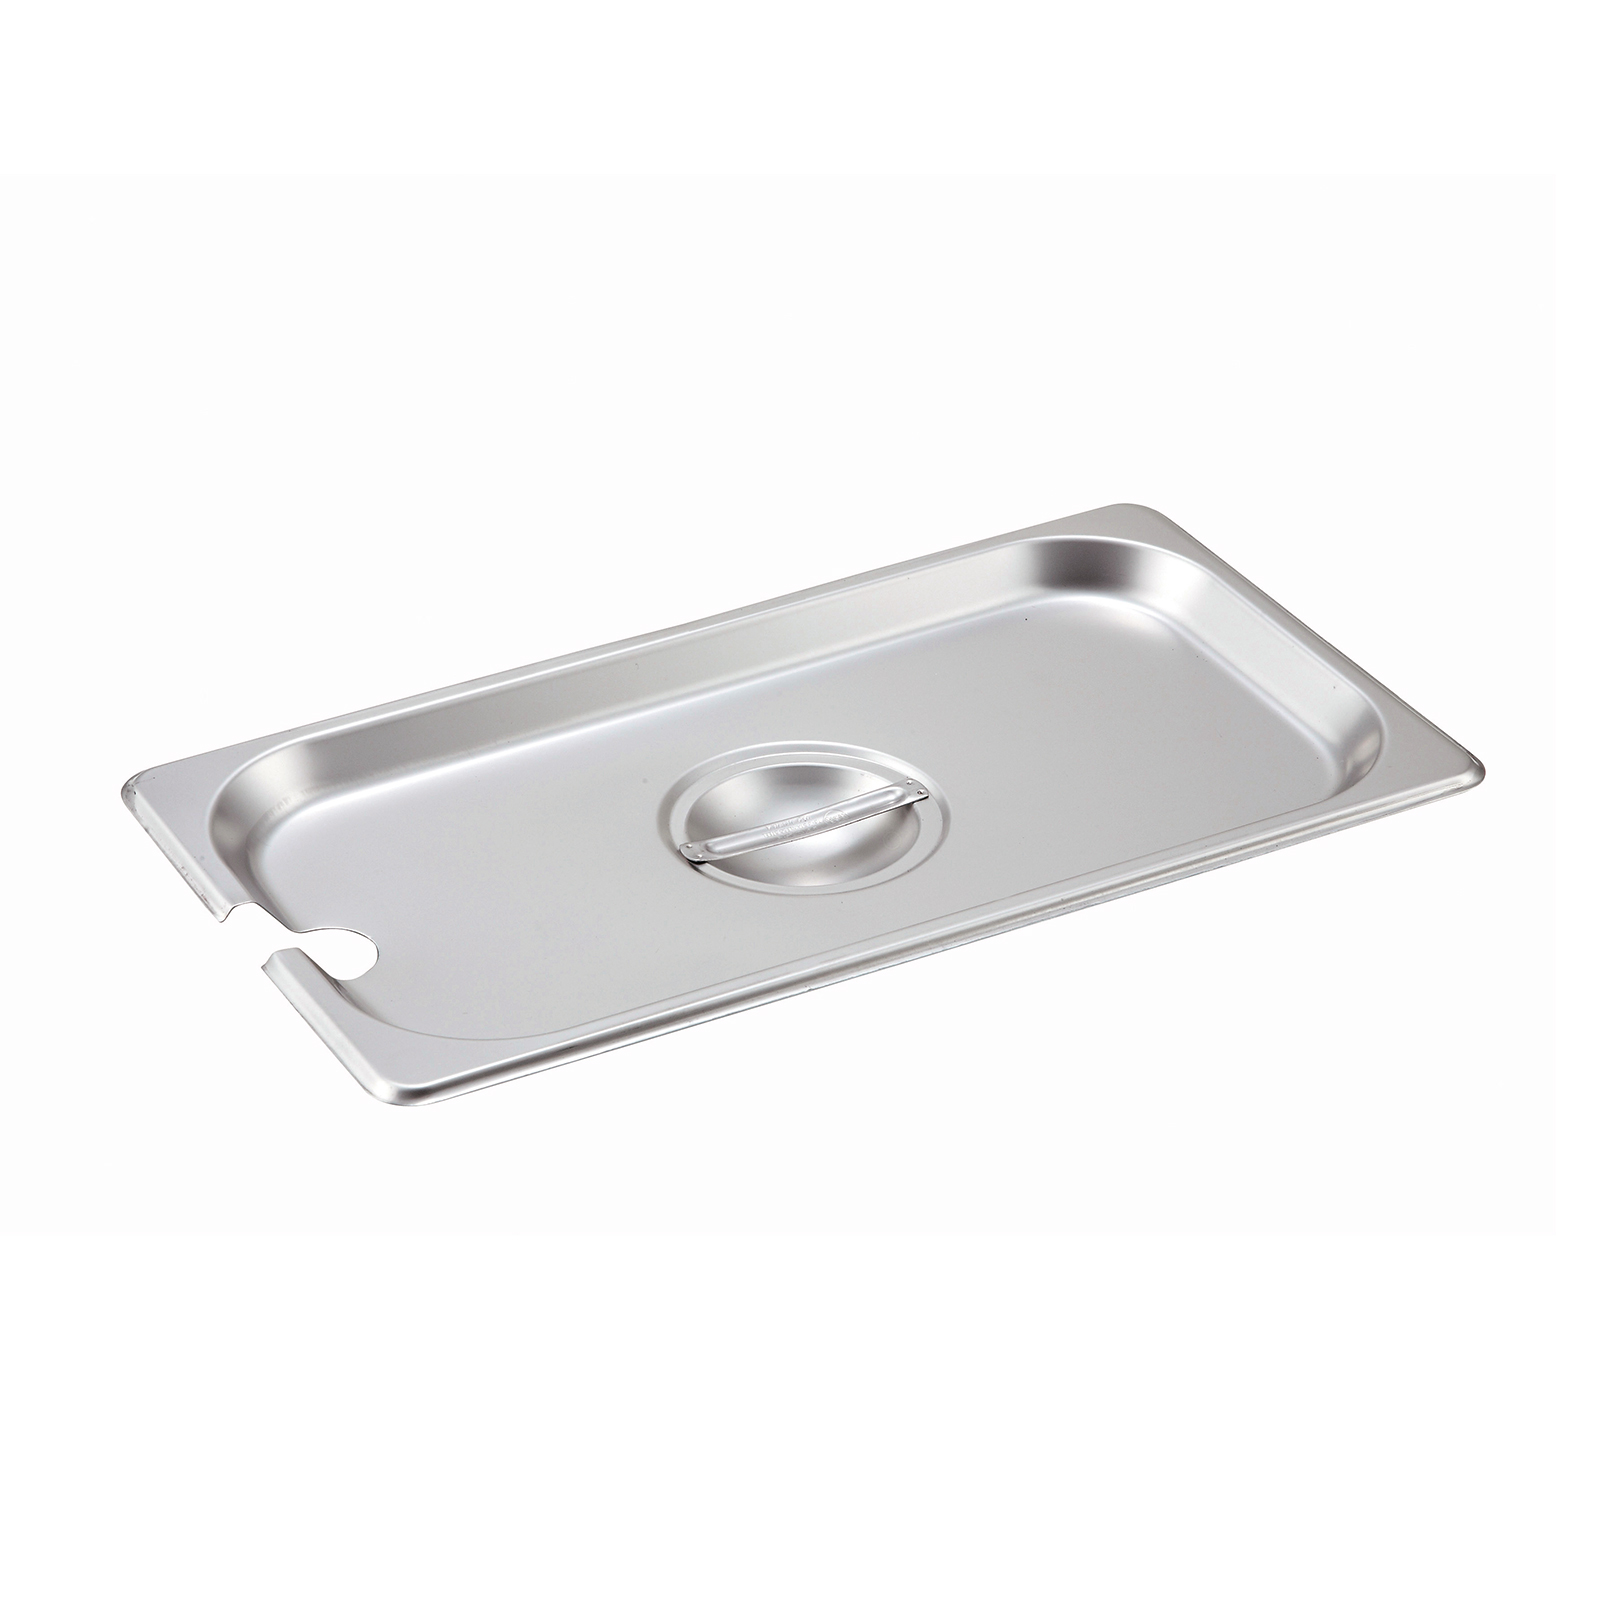 Winco SPCT steam table pan cover, stainless steel